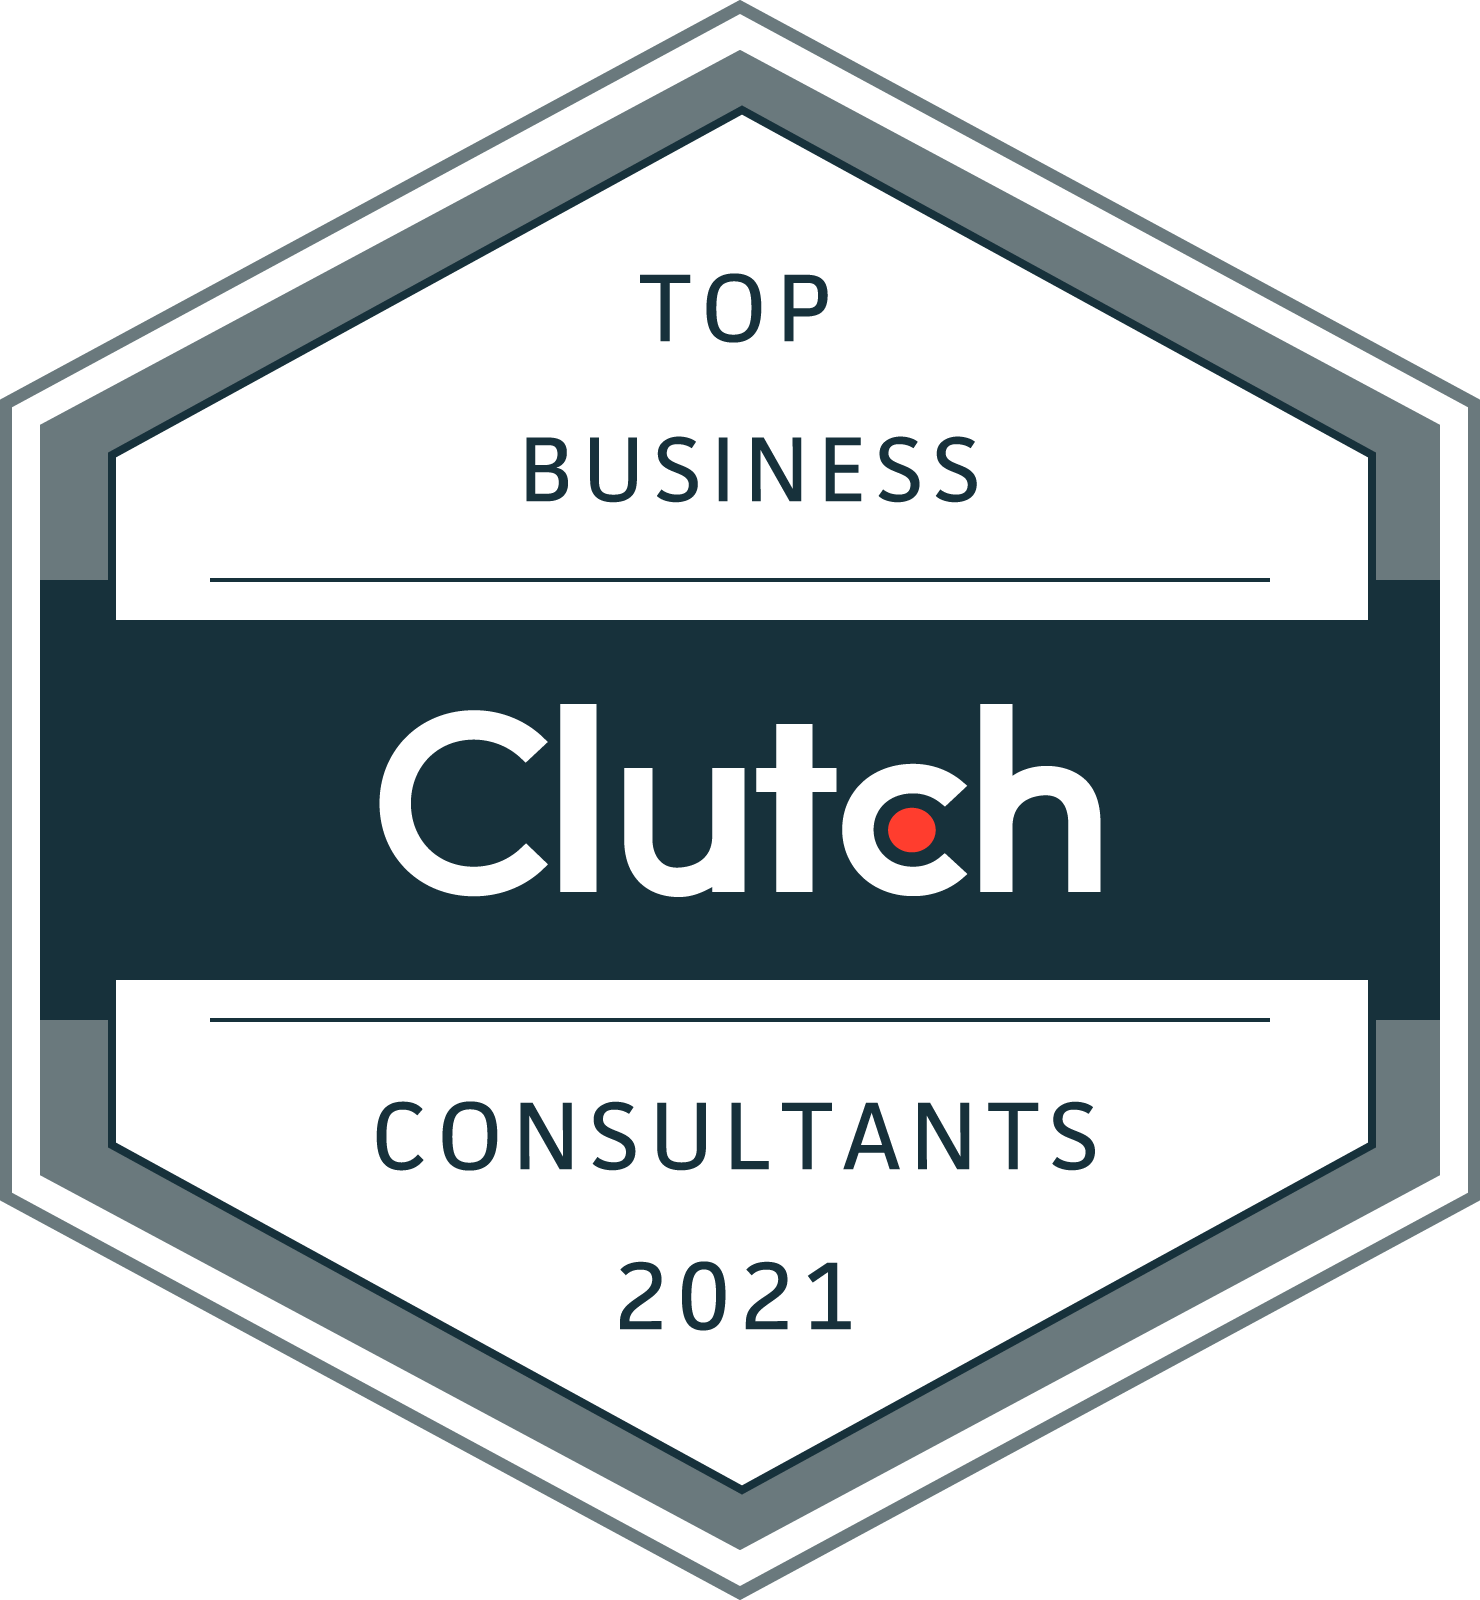 Best Digital Marketing Agency for B2B Consulting in 2021 - Local Asset